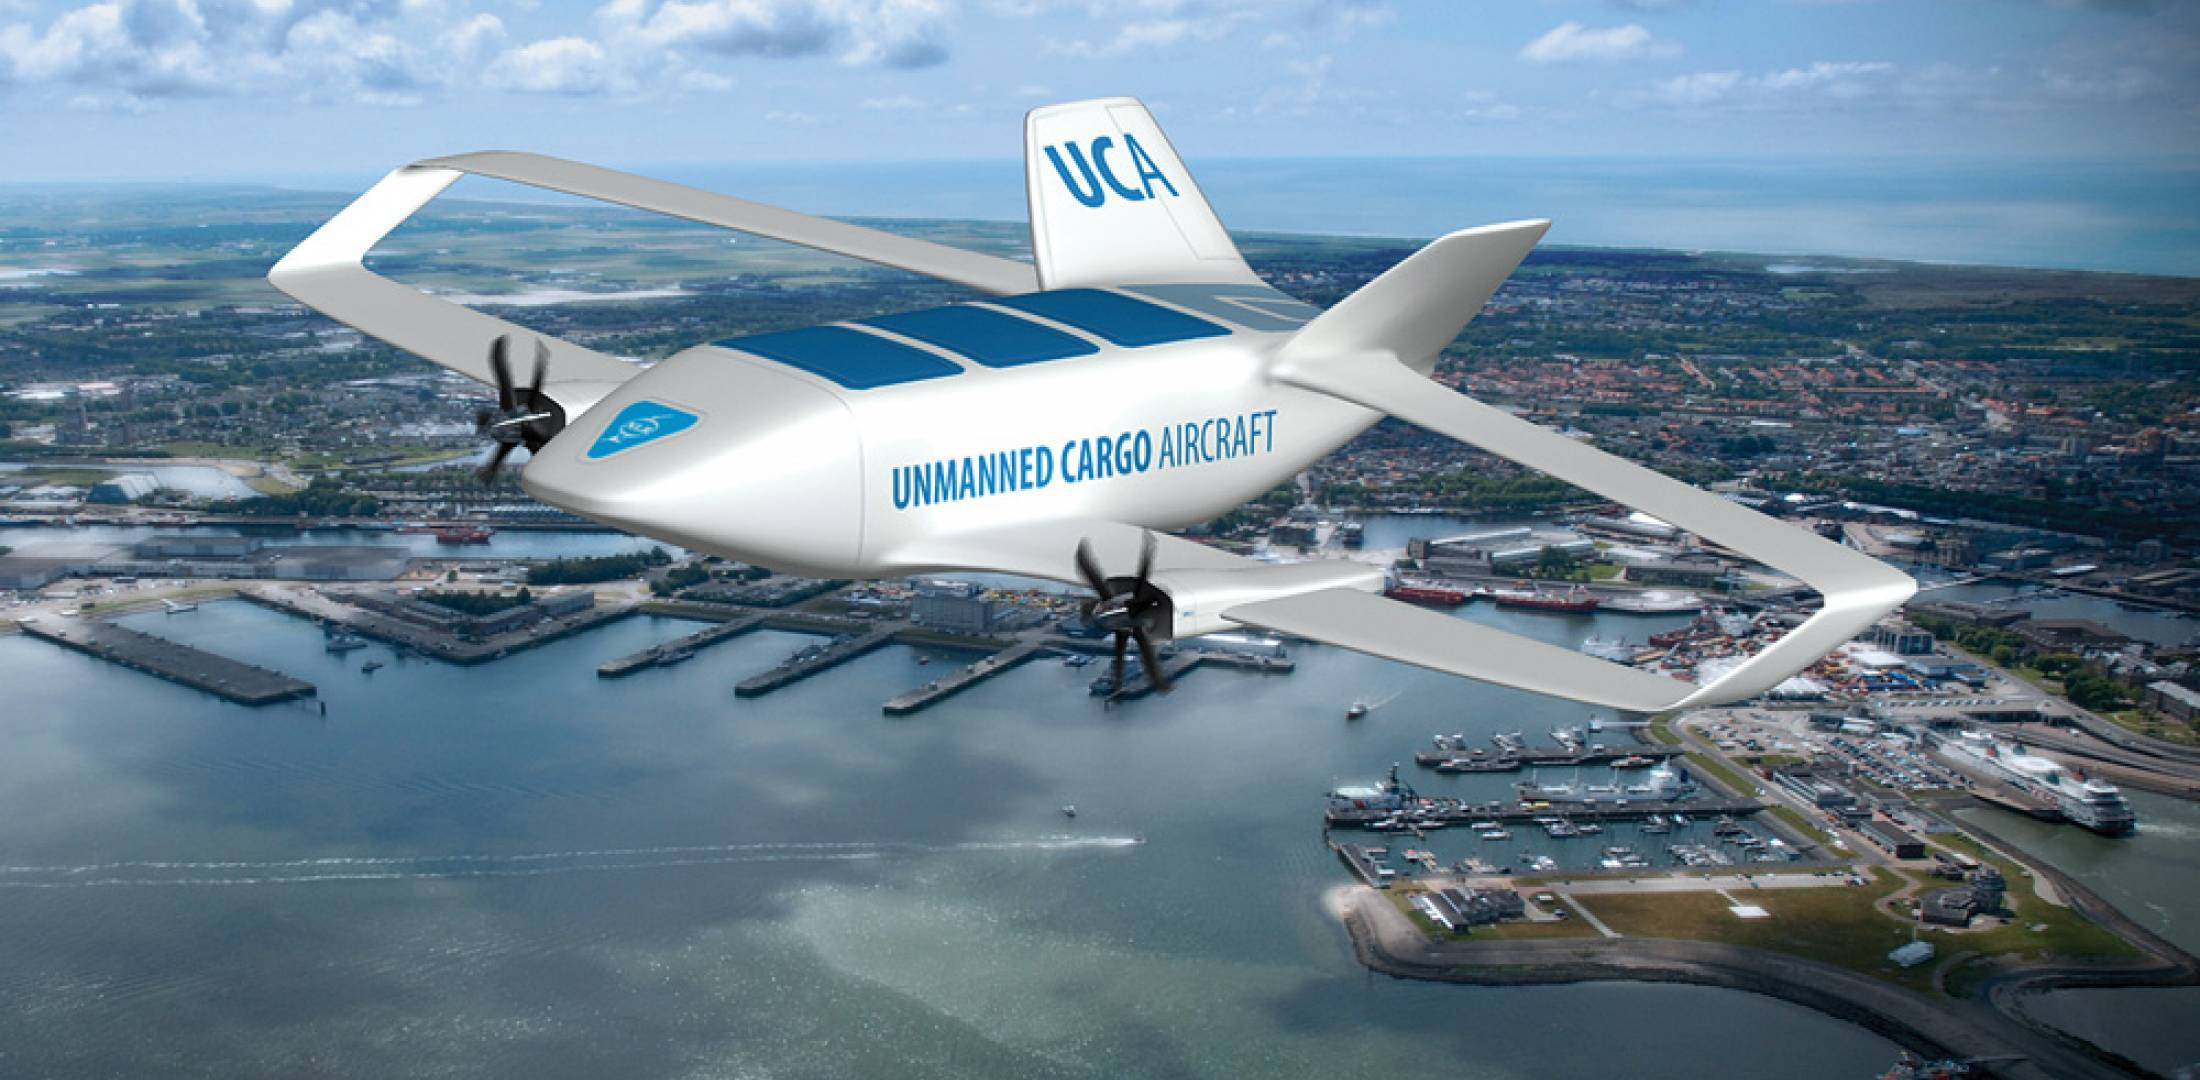 One artist's concept depicts a future cargo UAV, which is projected as one use for unmanned aircraft in commercial air transportation.